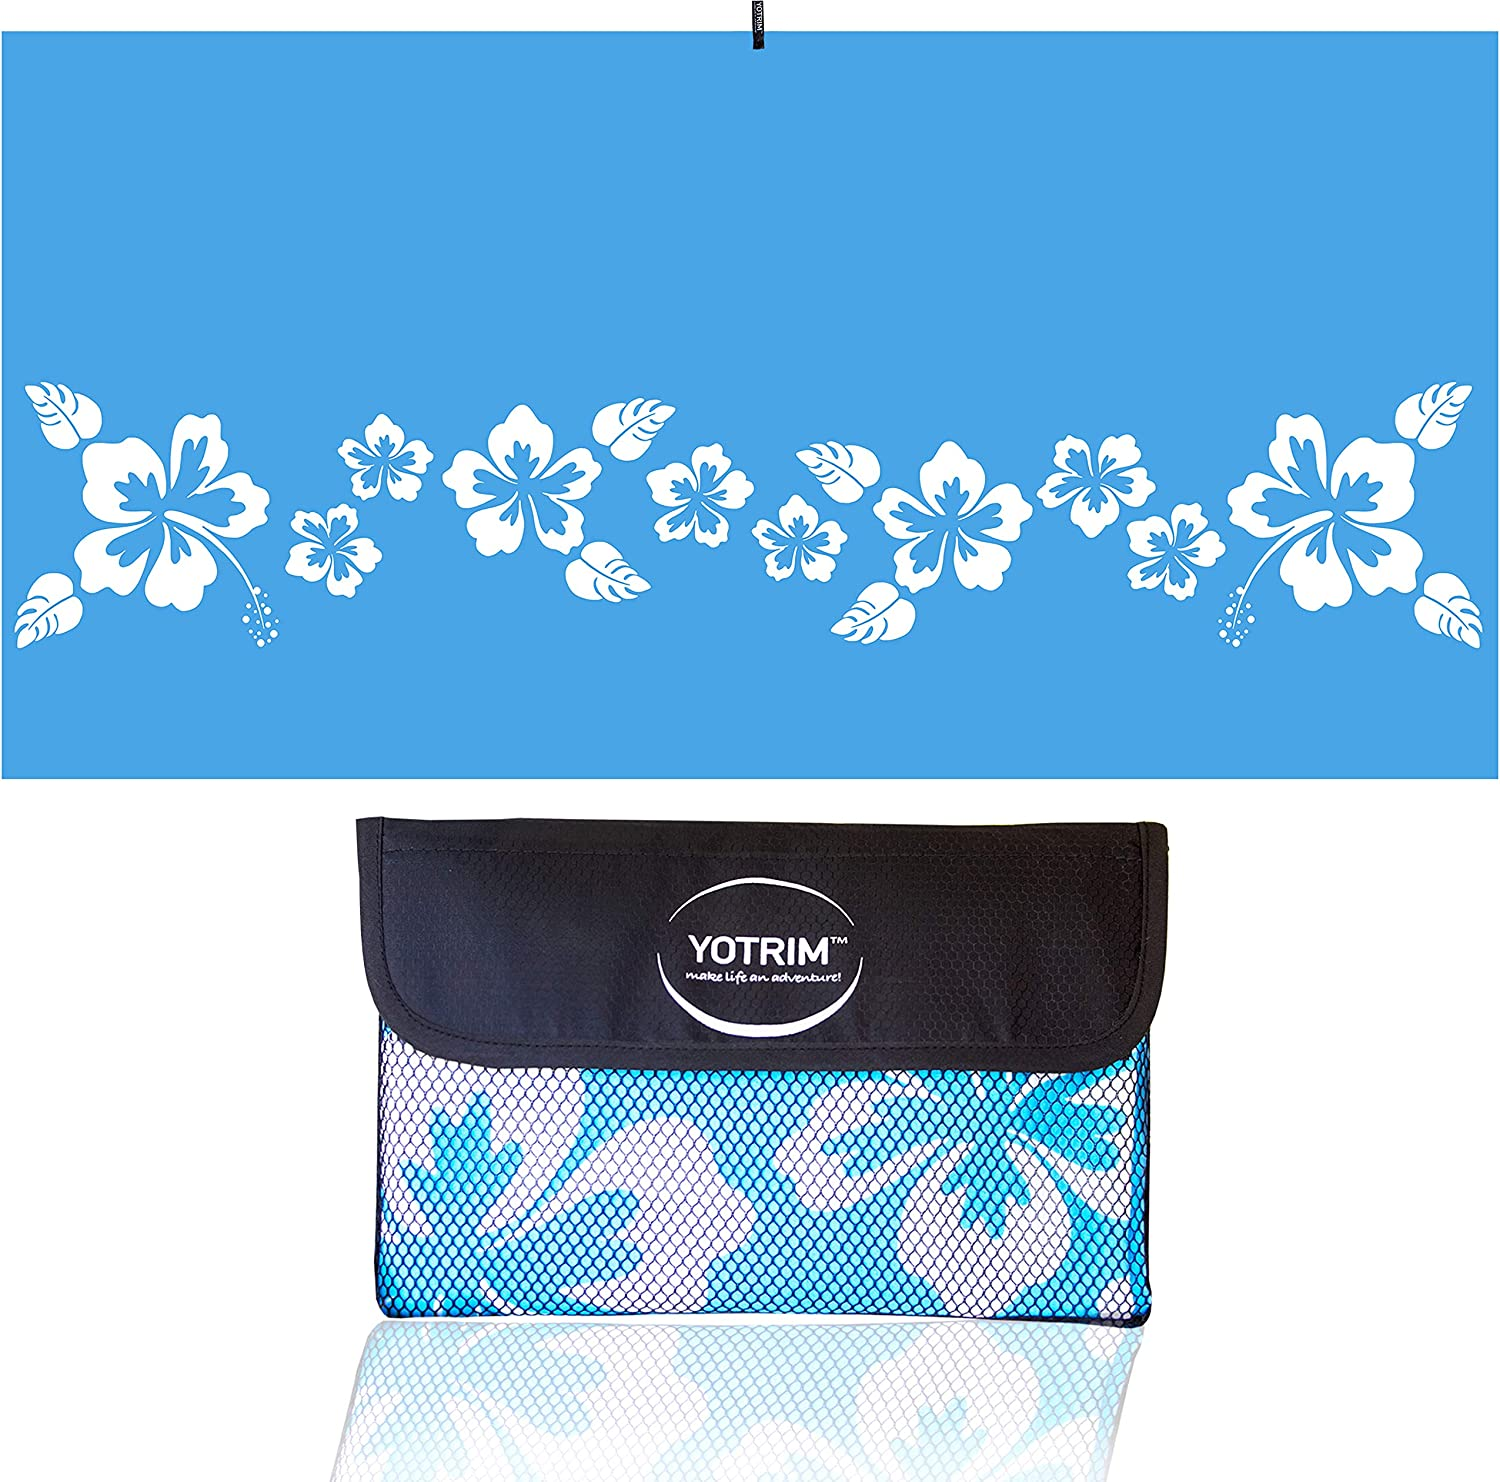 YOTRIM Microfiber Beach Towels for Travel - Quick Dry & Lightweight Towel for Swimmers - Sand Free Towel